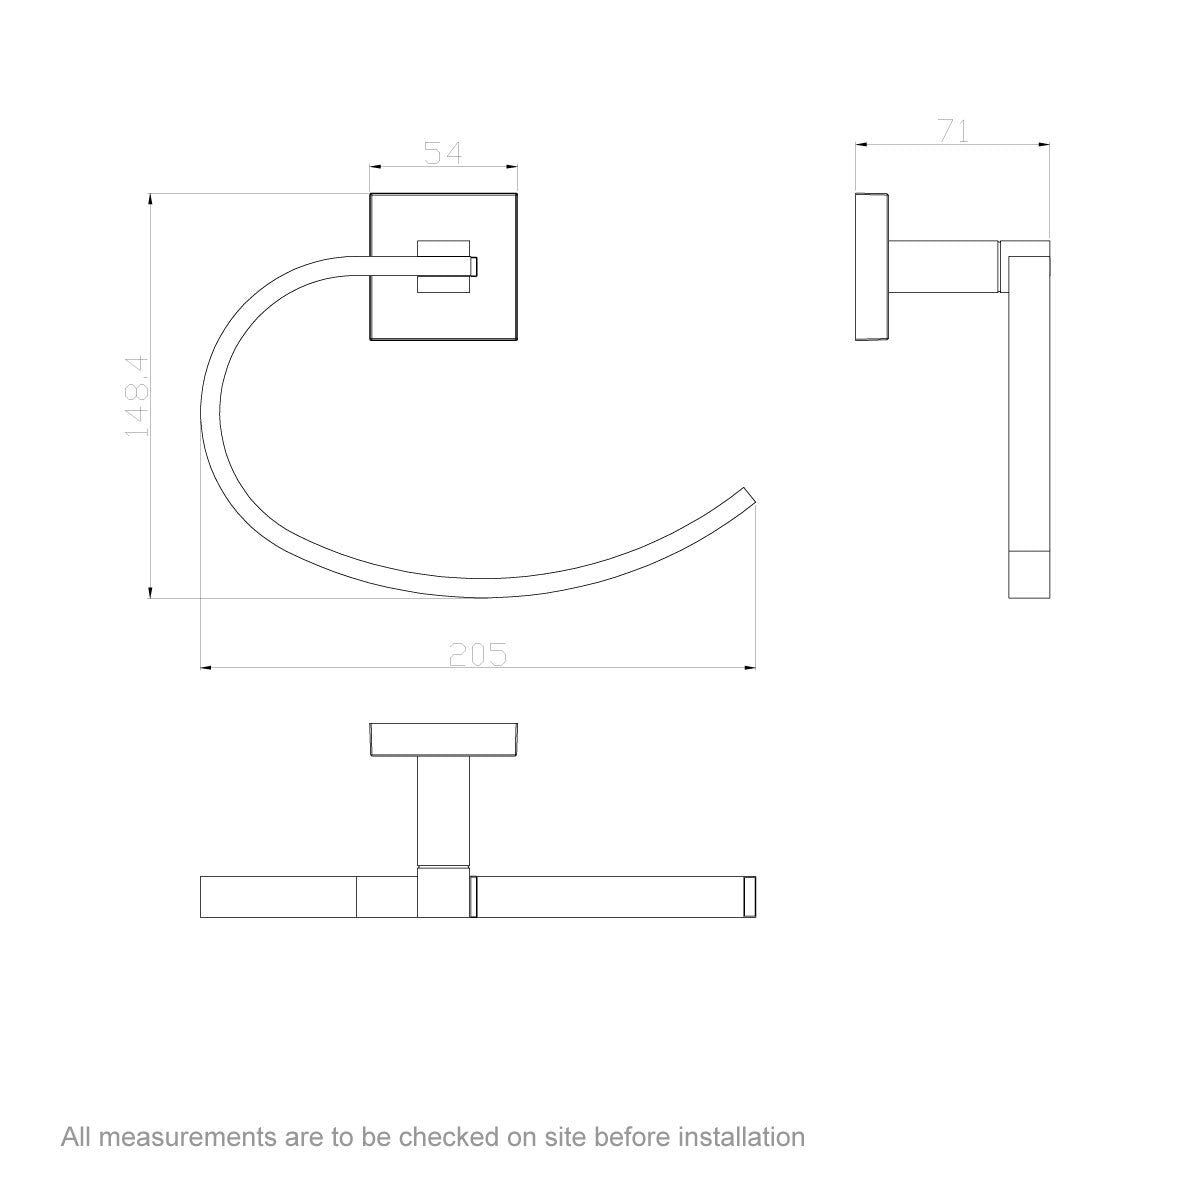 Dimensions for Orchard Flex towel ring